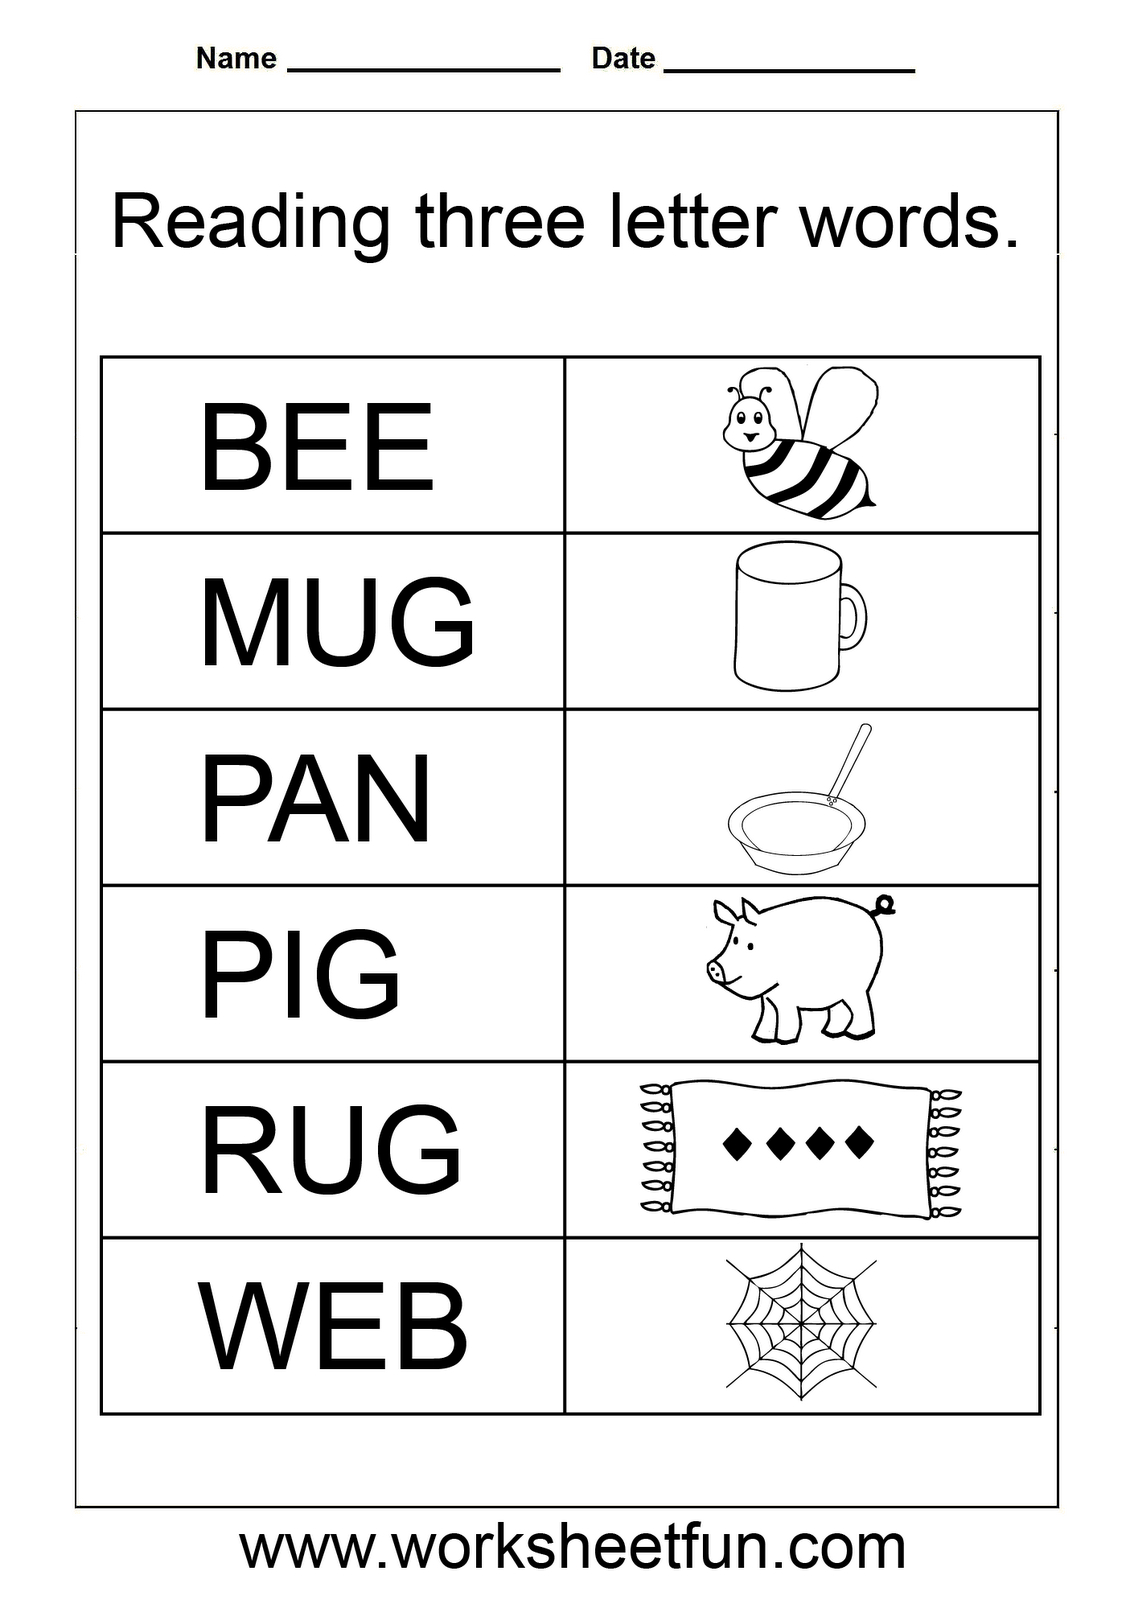 Simple Words - Worksheet | Three Letter Words, Printable pertaining to Tracing Letters And Words Worksheets